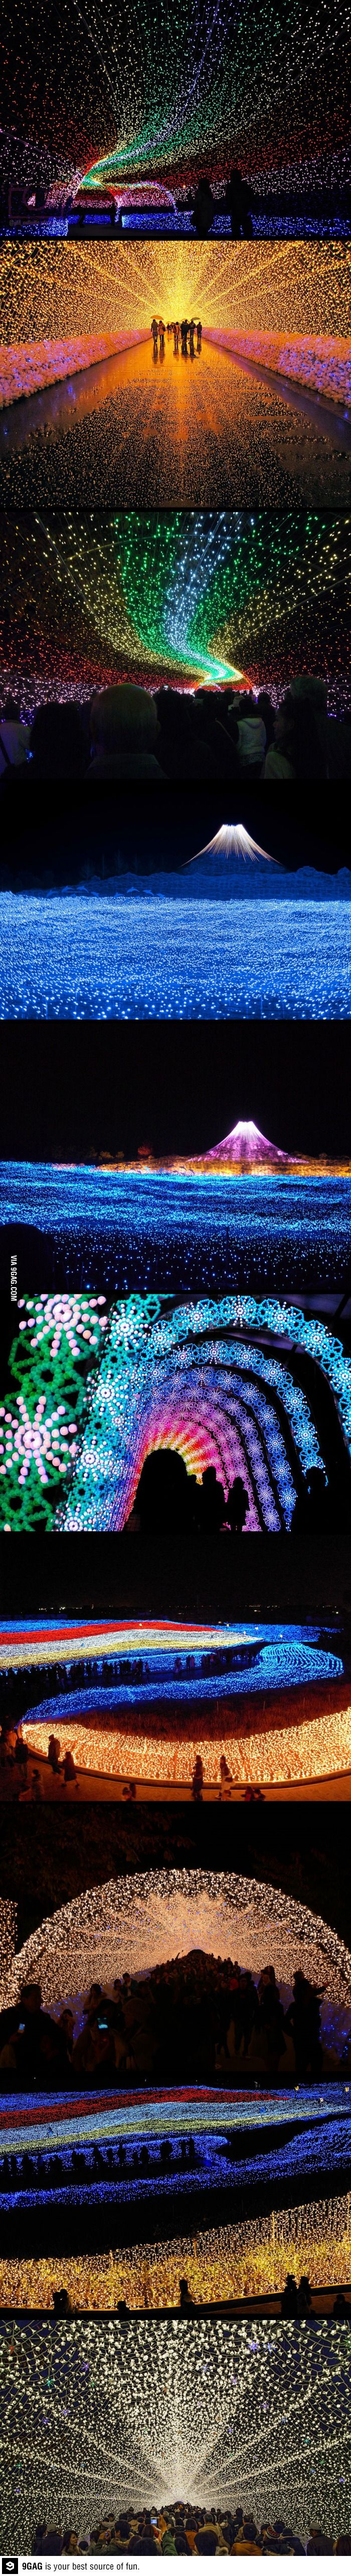 Winter light festival in japan, made from 7 million LEDs! People are amazing!